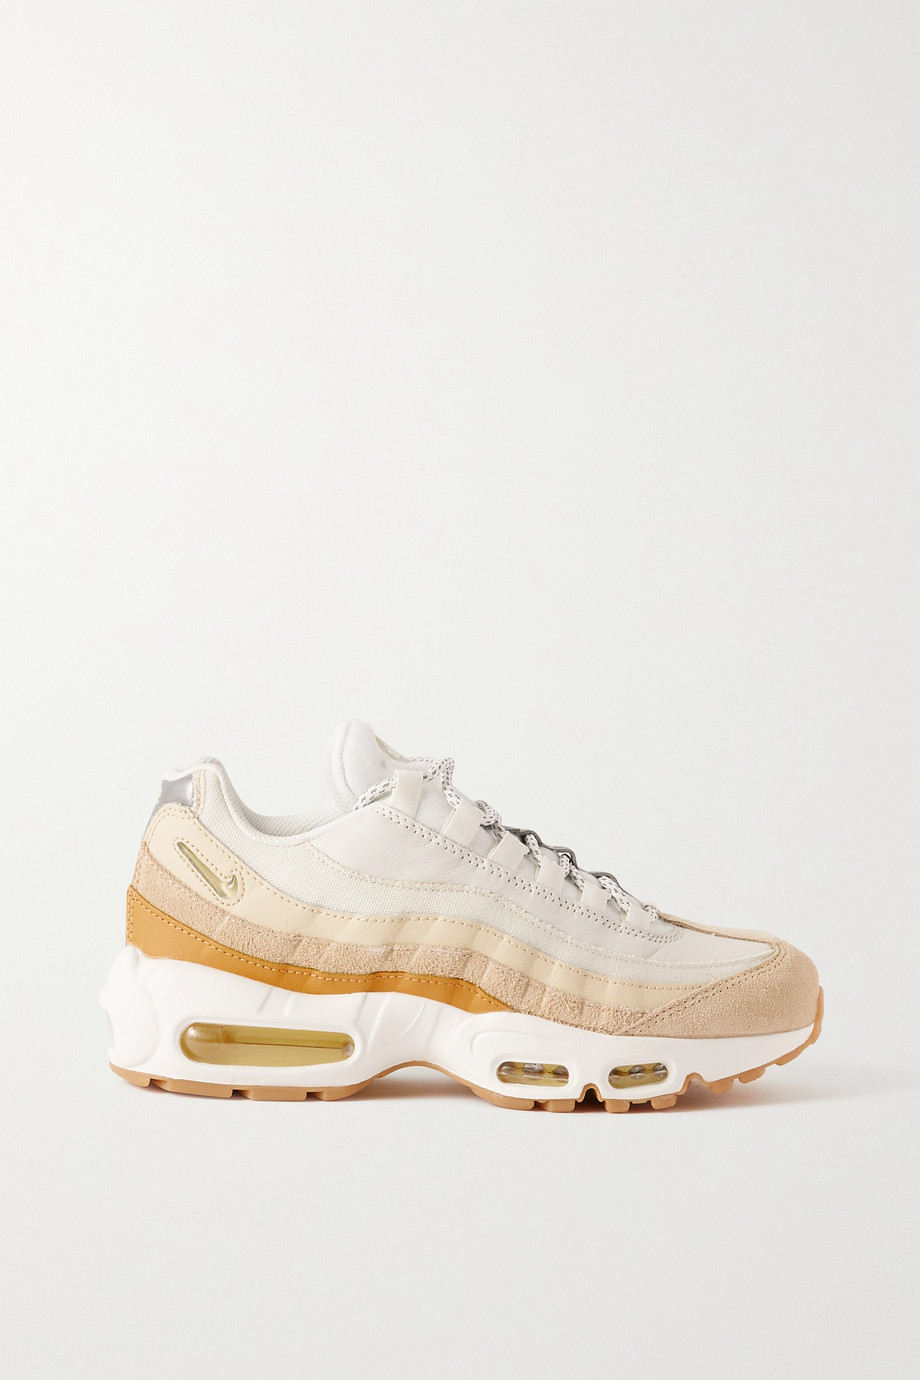 Nike Air Max 95 leather, suede and mesh sneakers